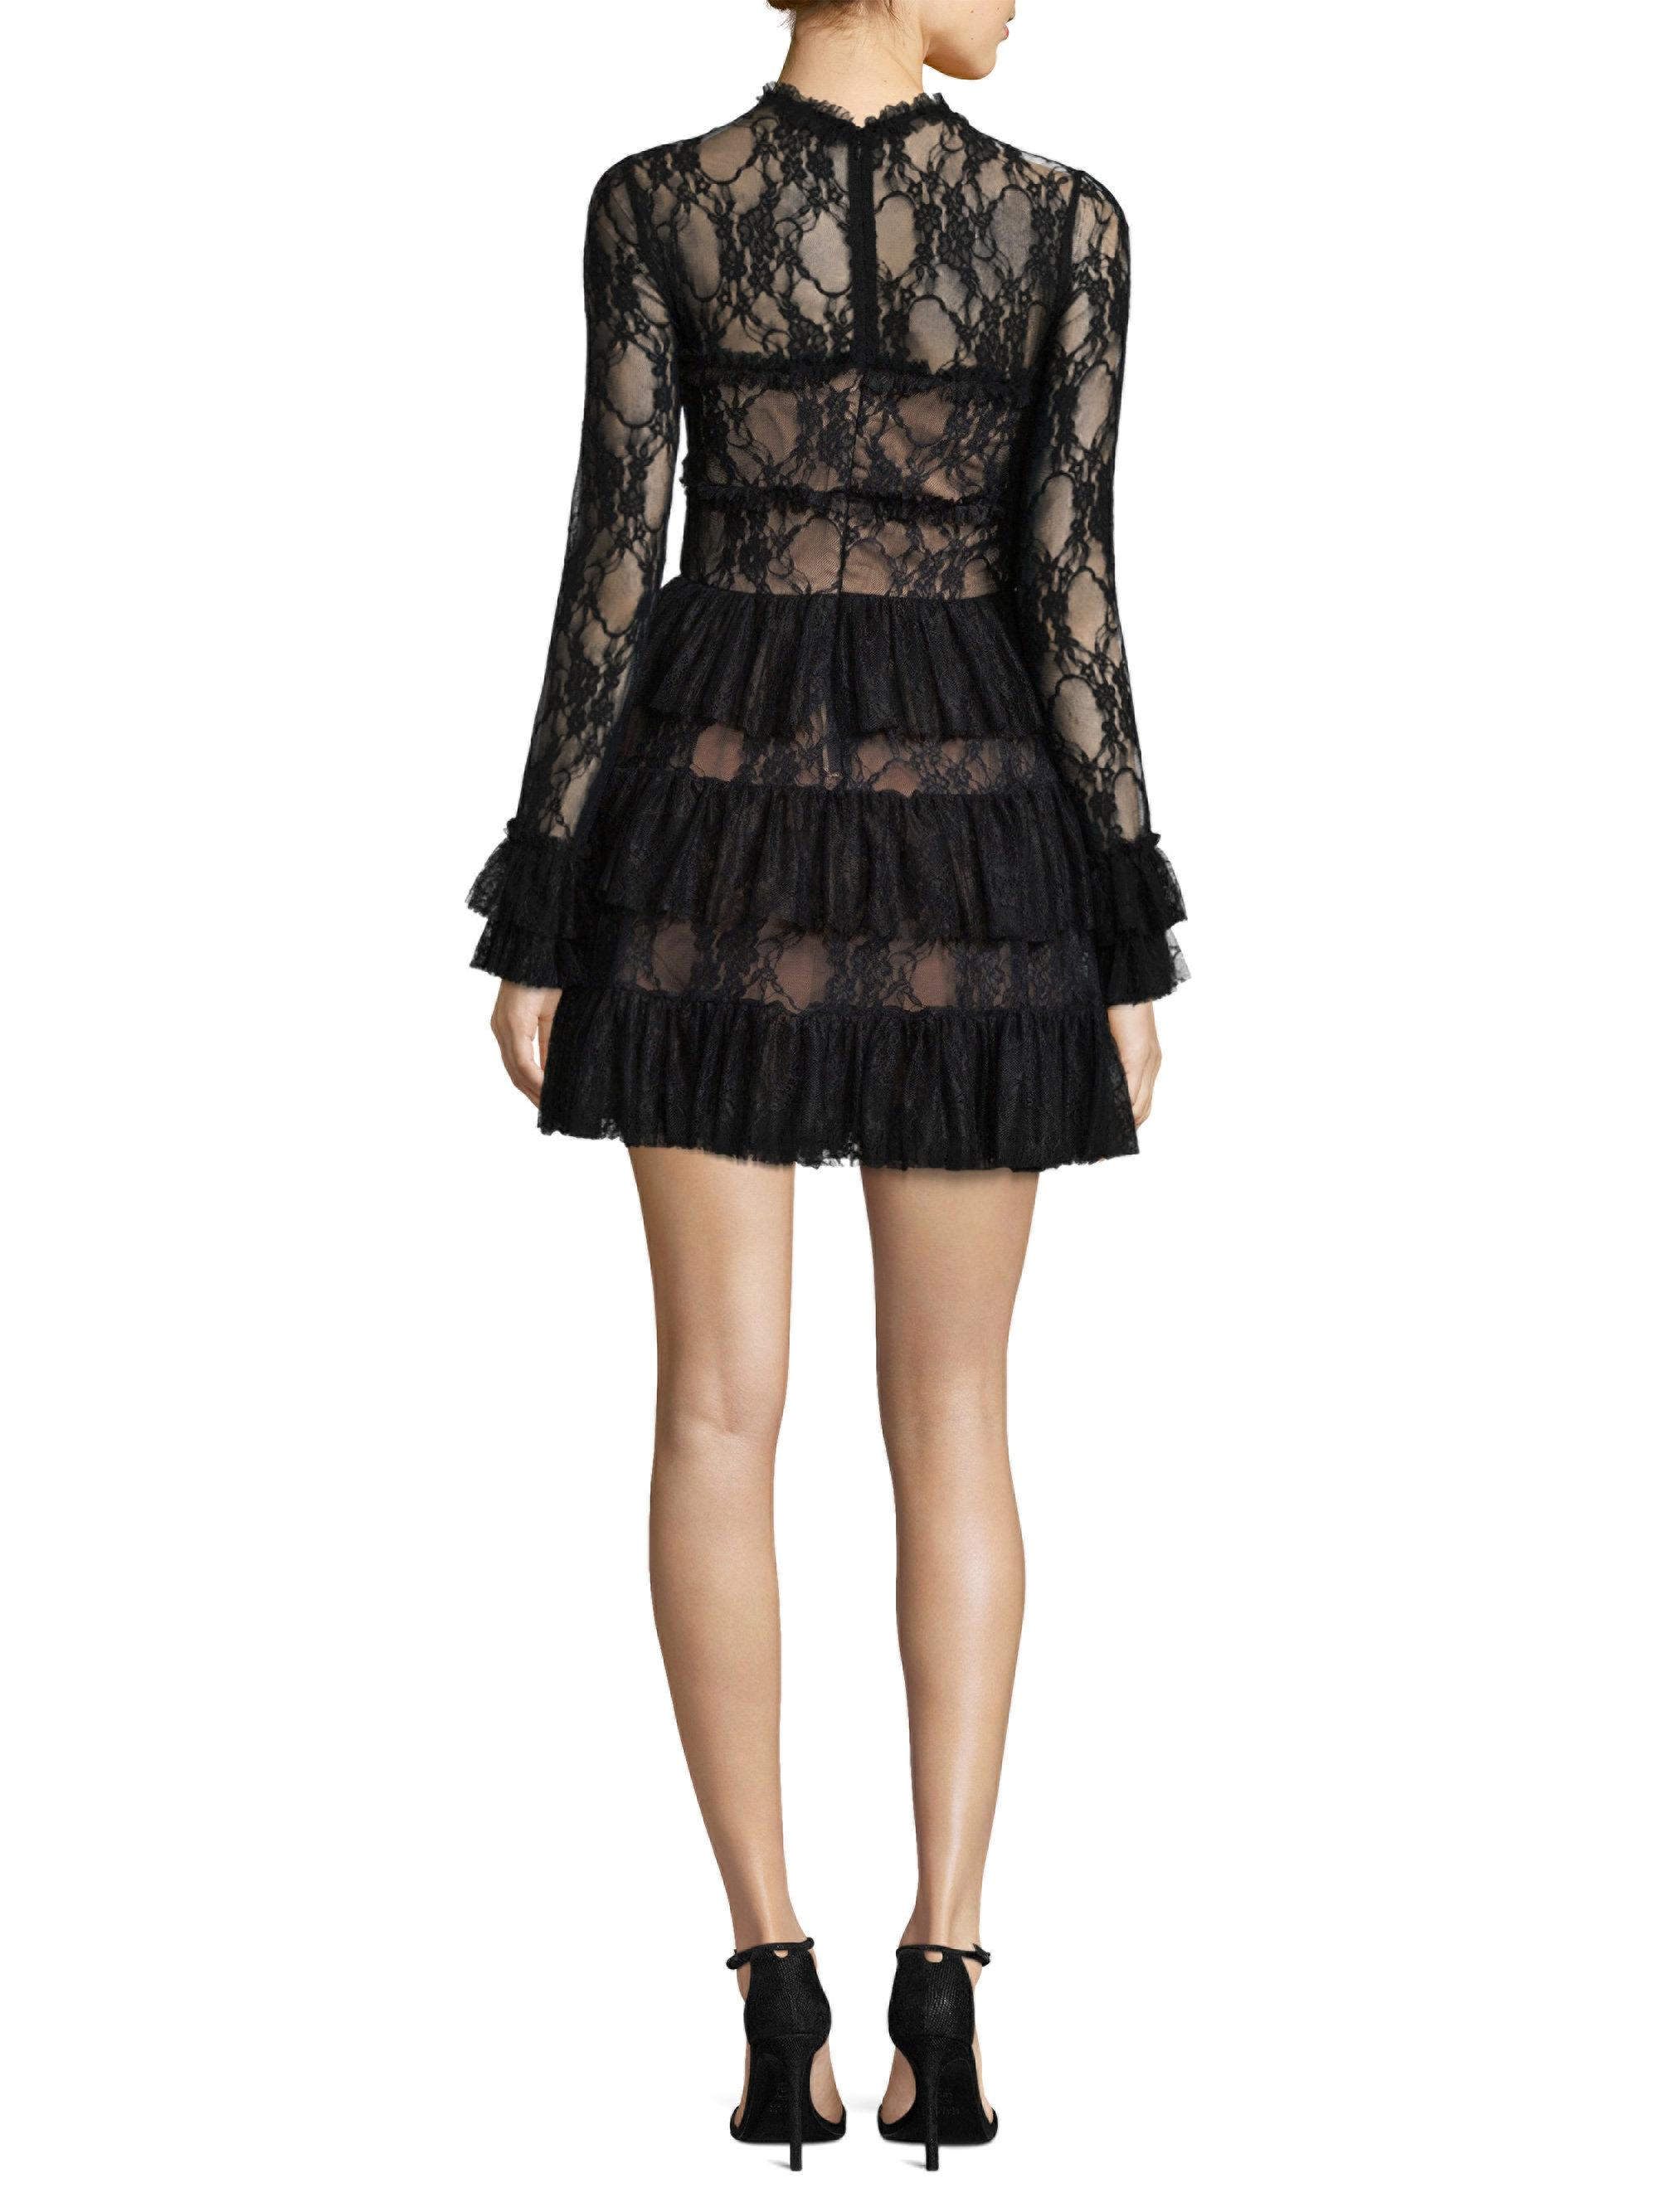 Tiered Lace Dress